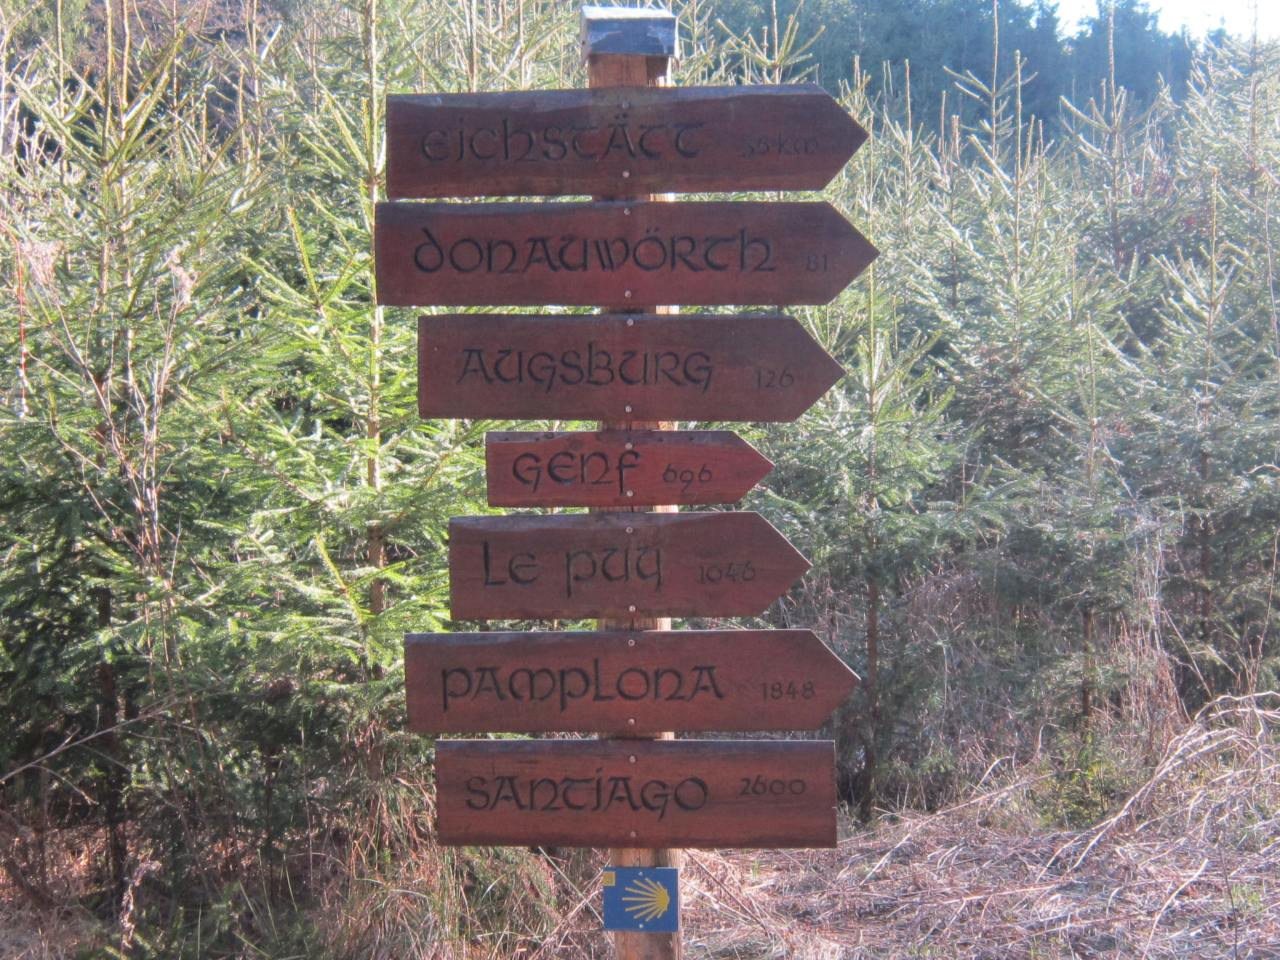 Kilometer markers on the Jakobsweg in southern Germany